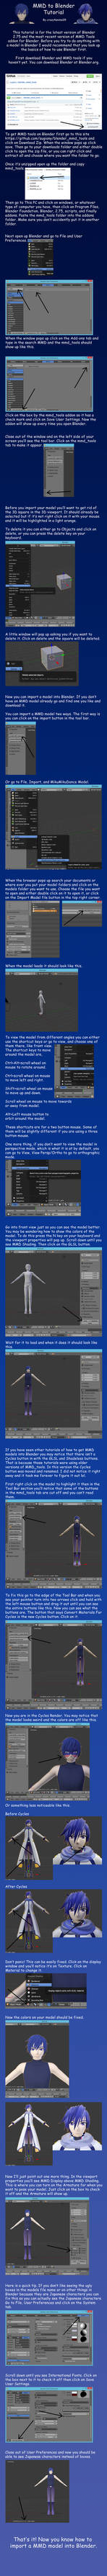 MMD to Blender Tutorial by crazy4anime09